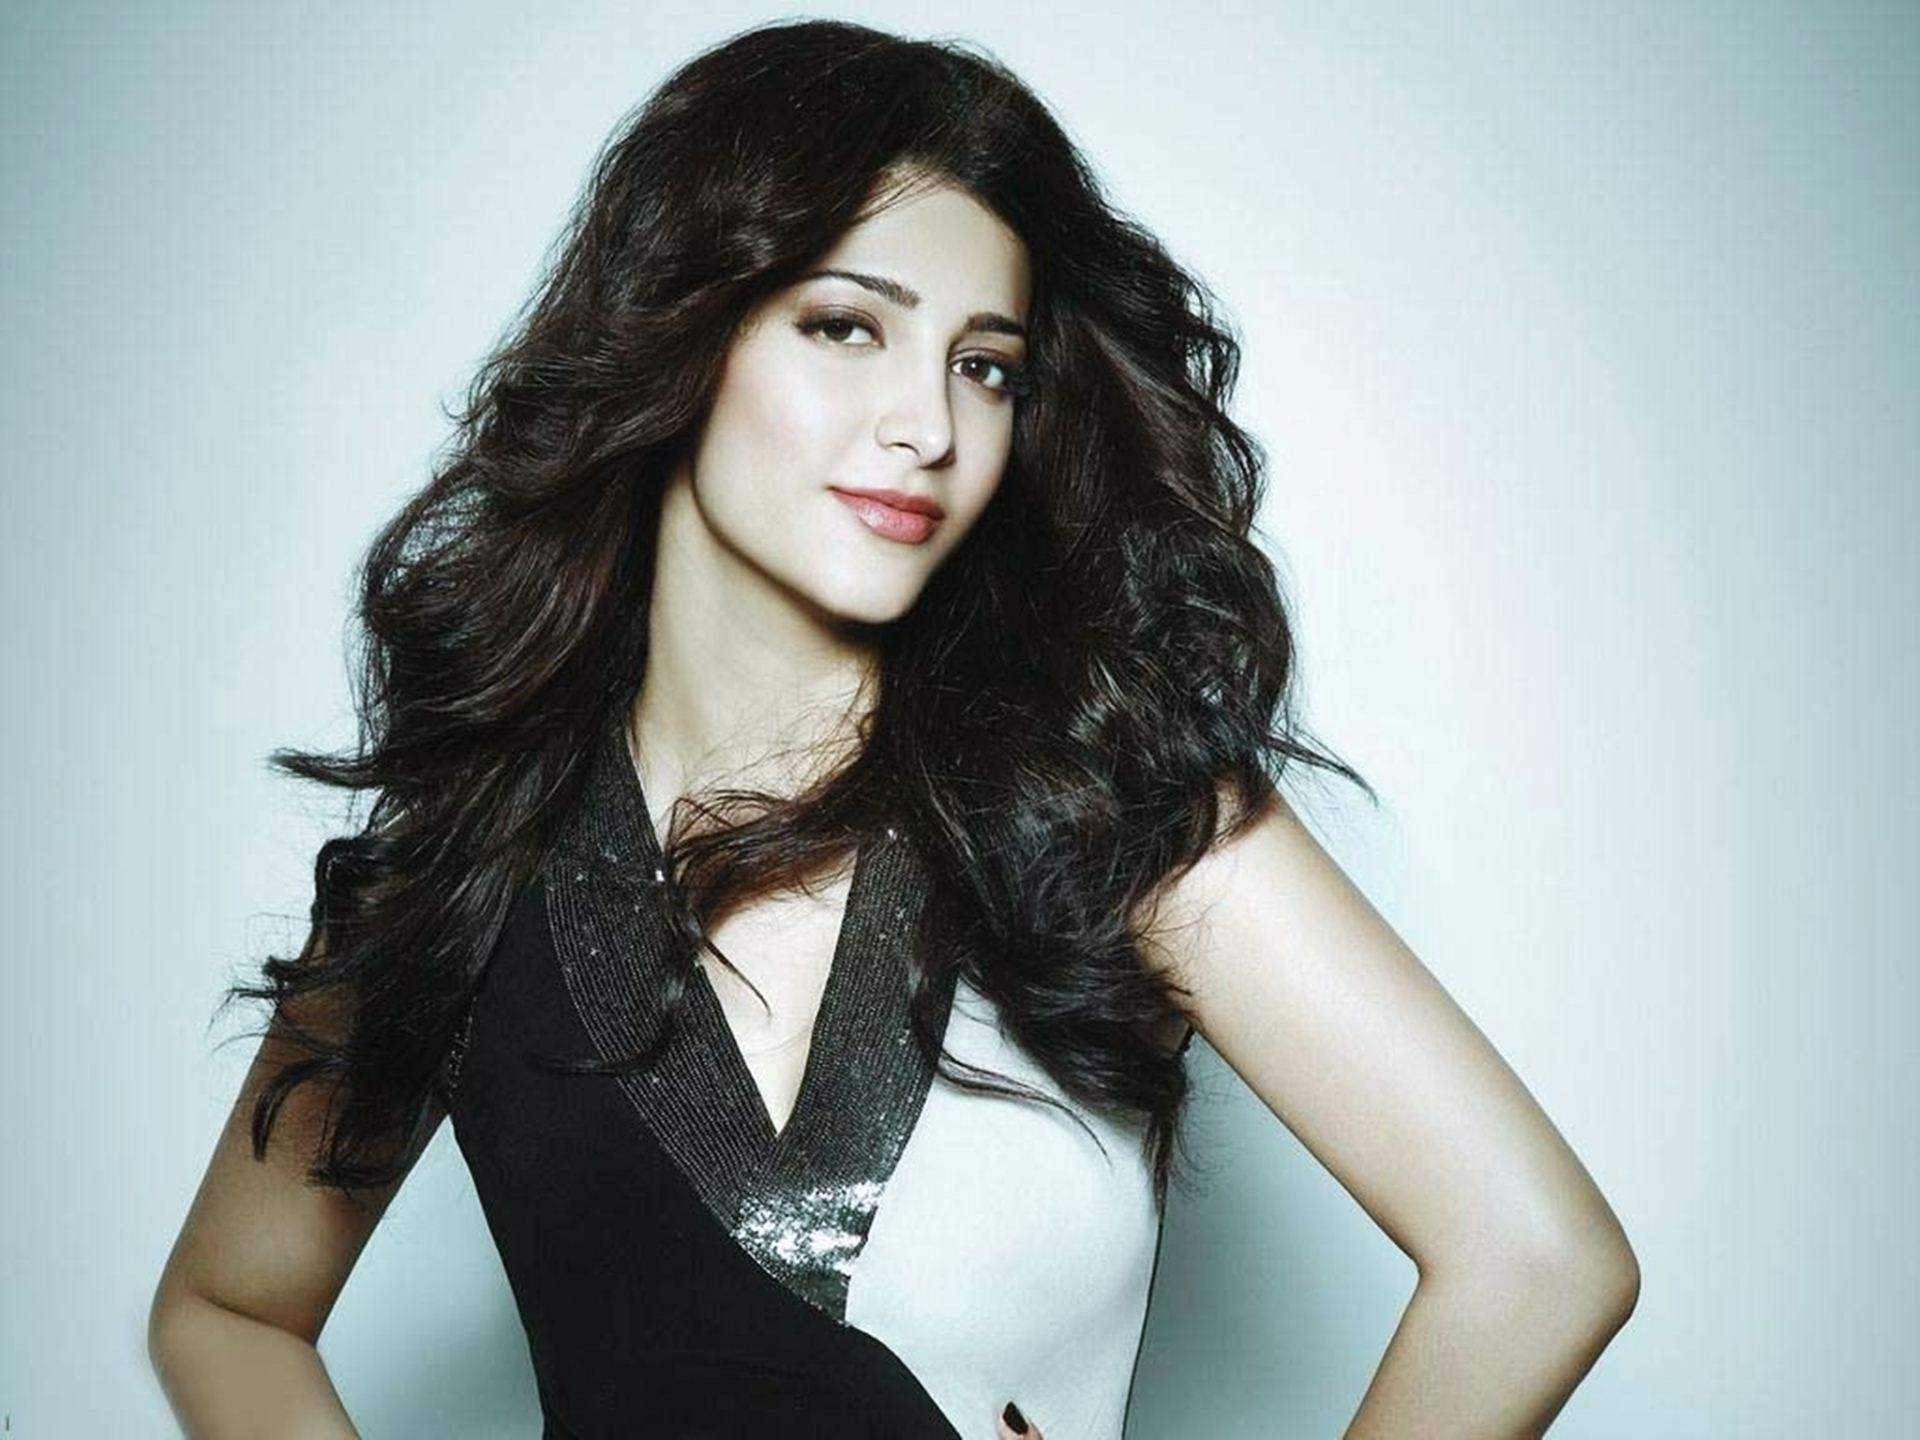 Shruti Haasan: Shruti Hassan Wallpapers High Resolution And Quality Download